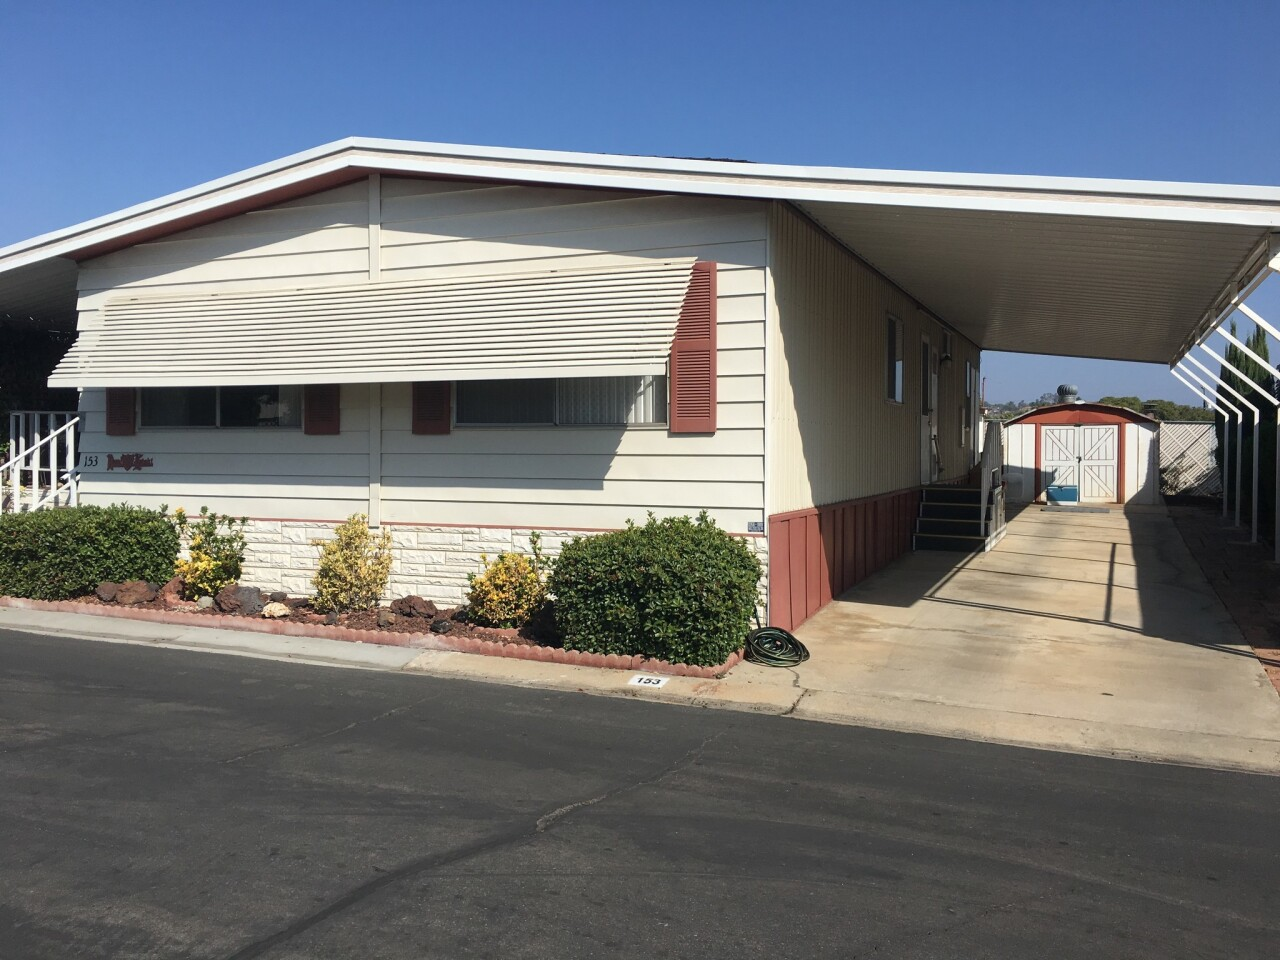 Home of the Week - 1212 H St. Space 153, Ramona CA 92065